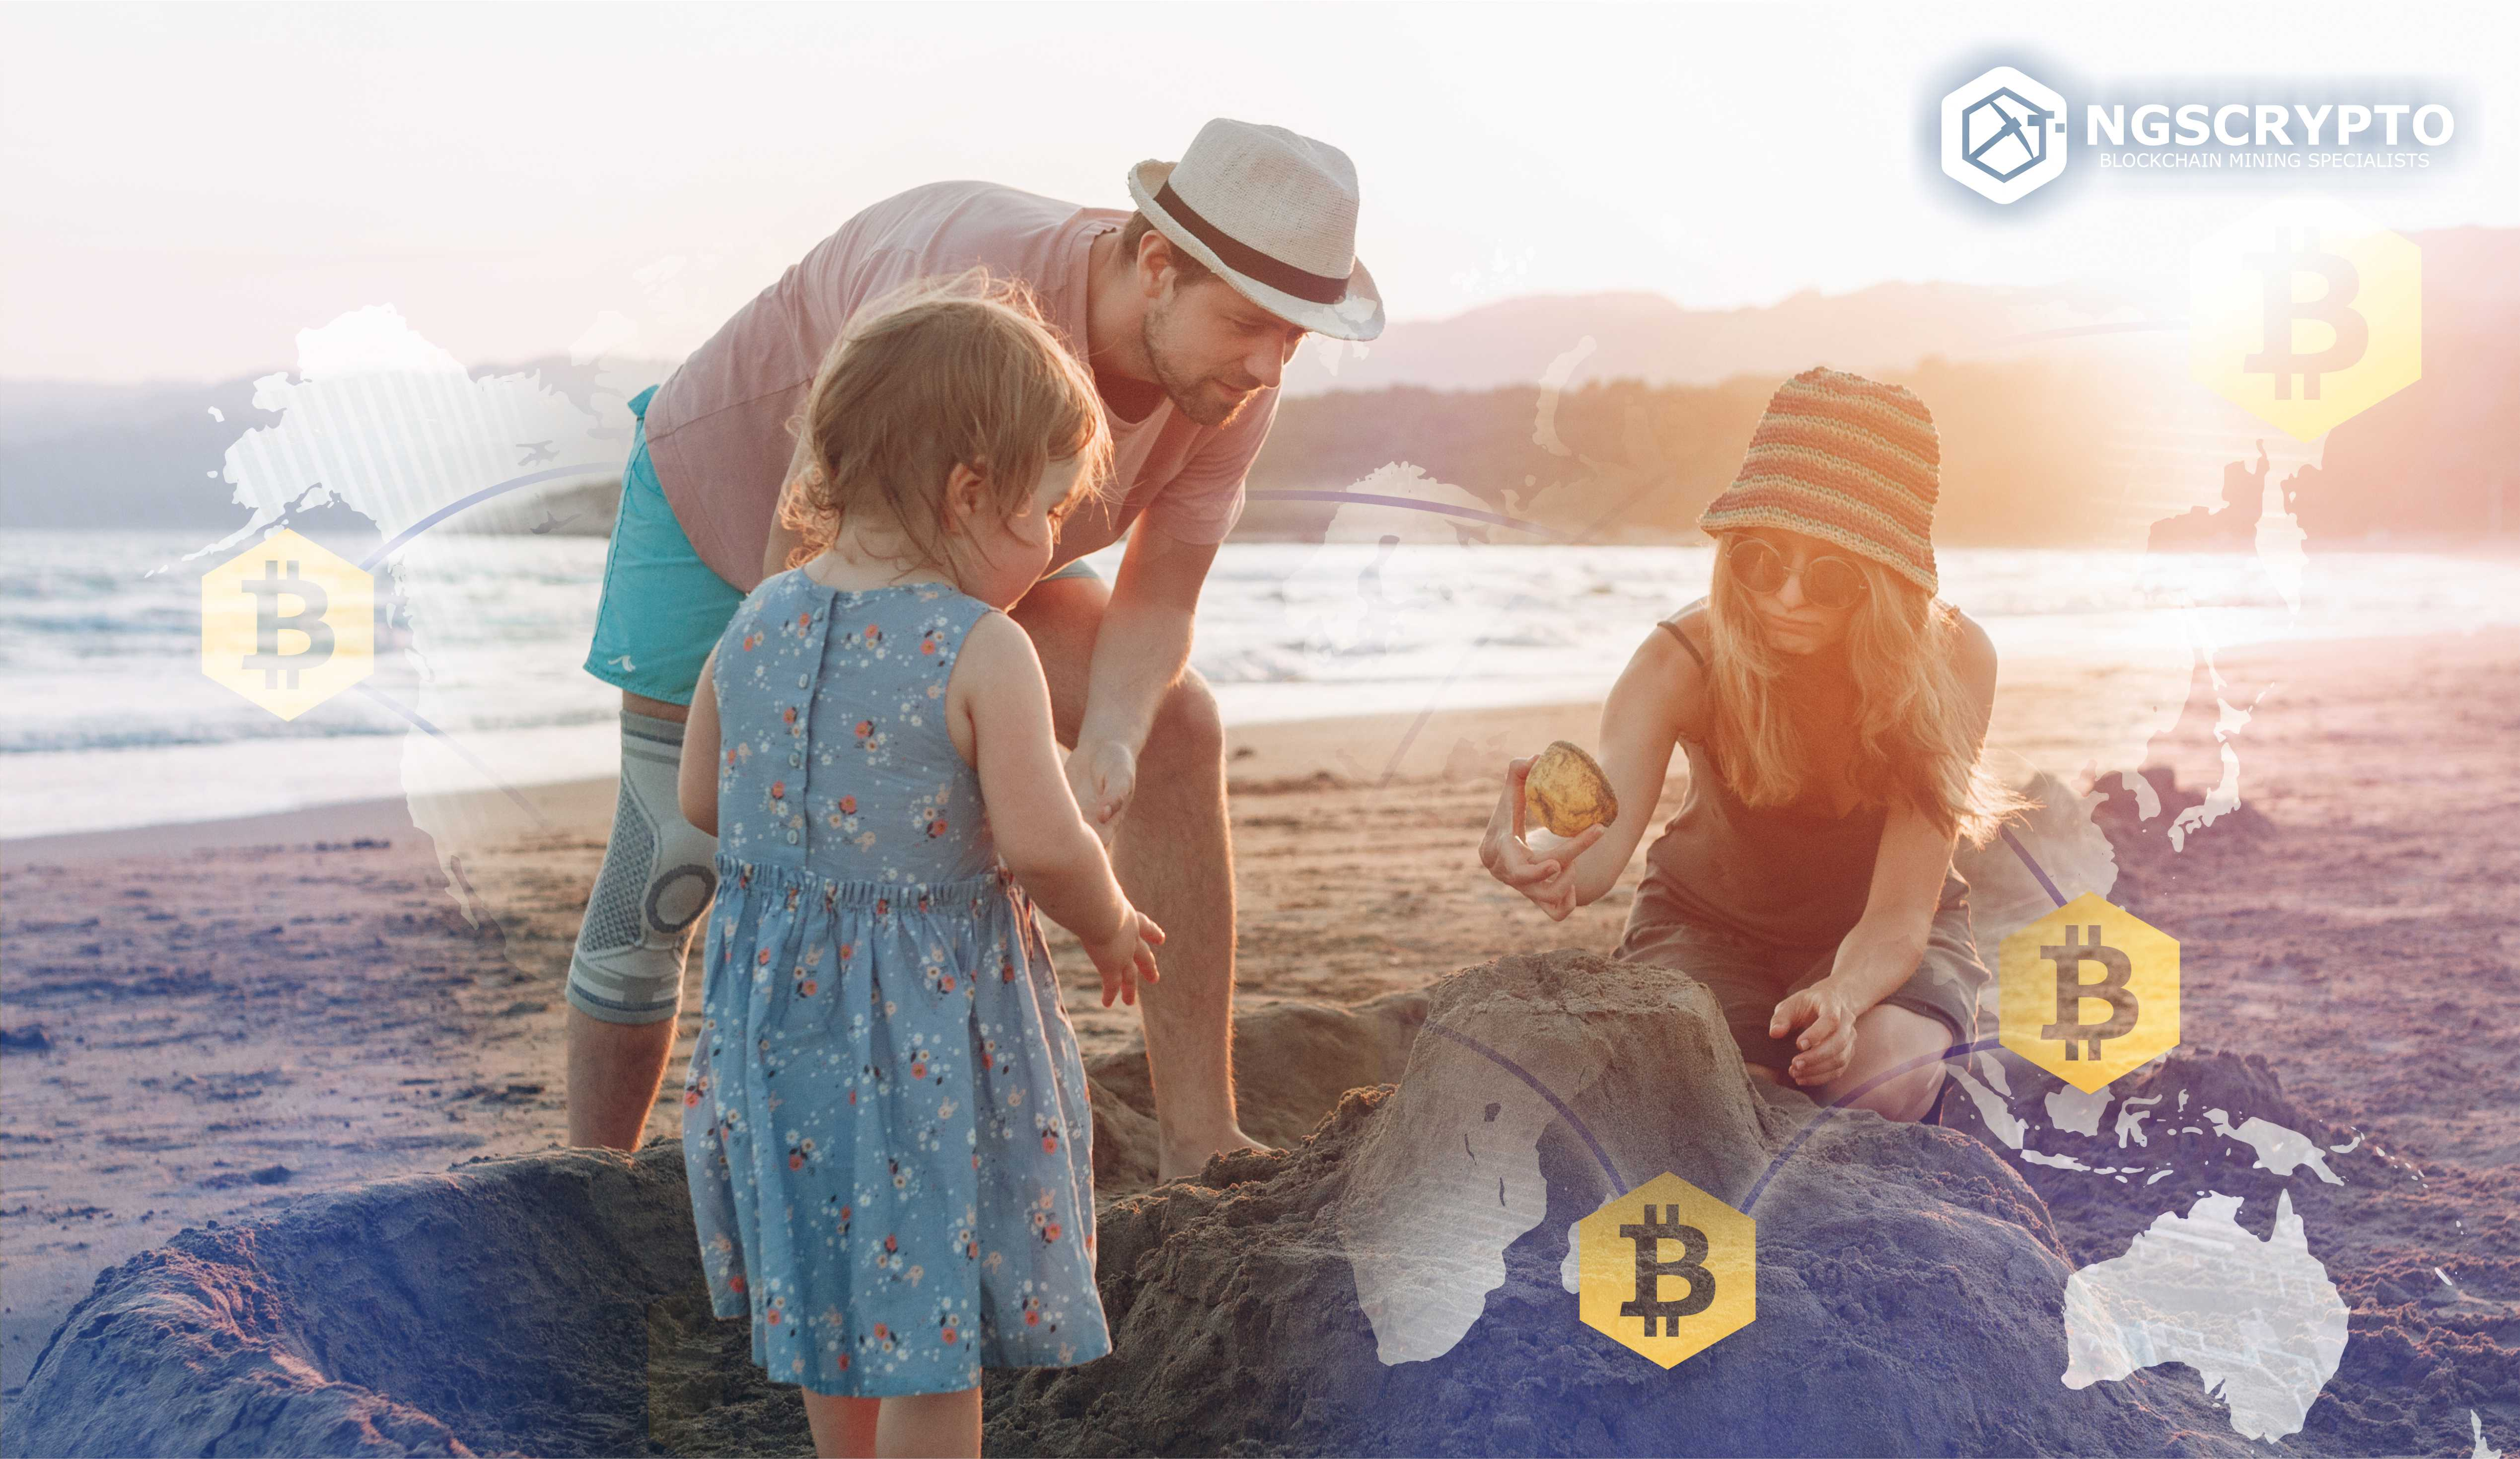 FAMILY OF 5 TRAVELLING THE WORLD COMPLETELY FUNDED BY BTC MINING